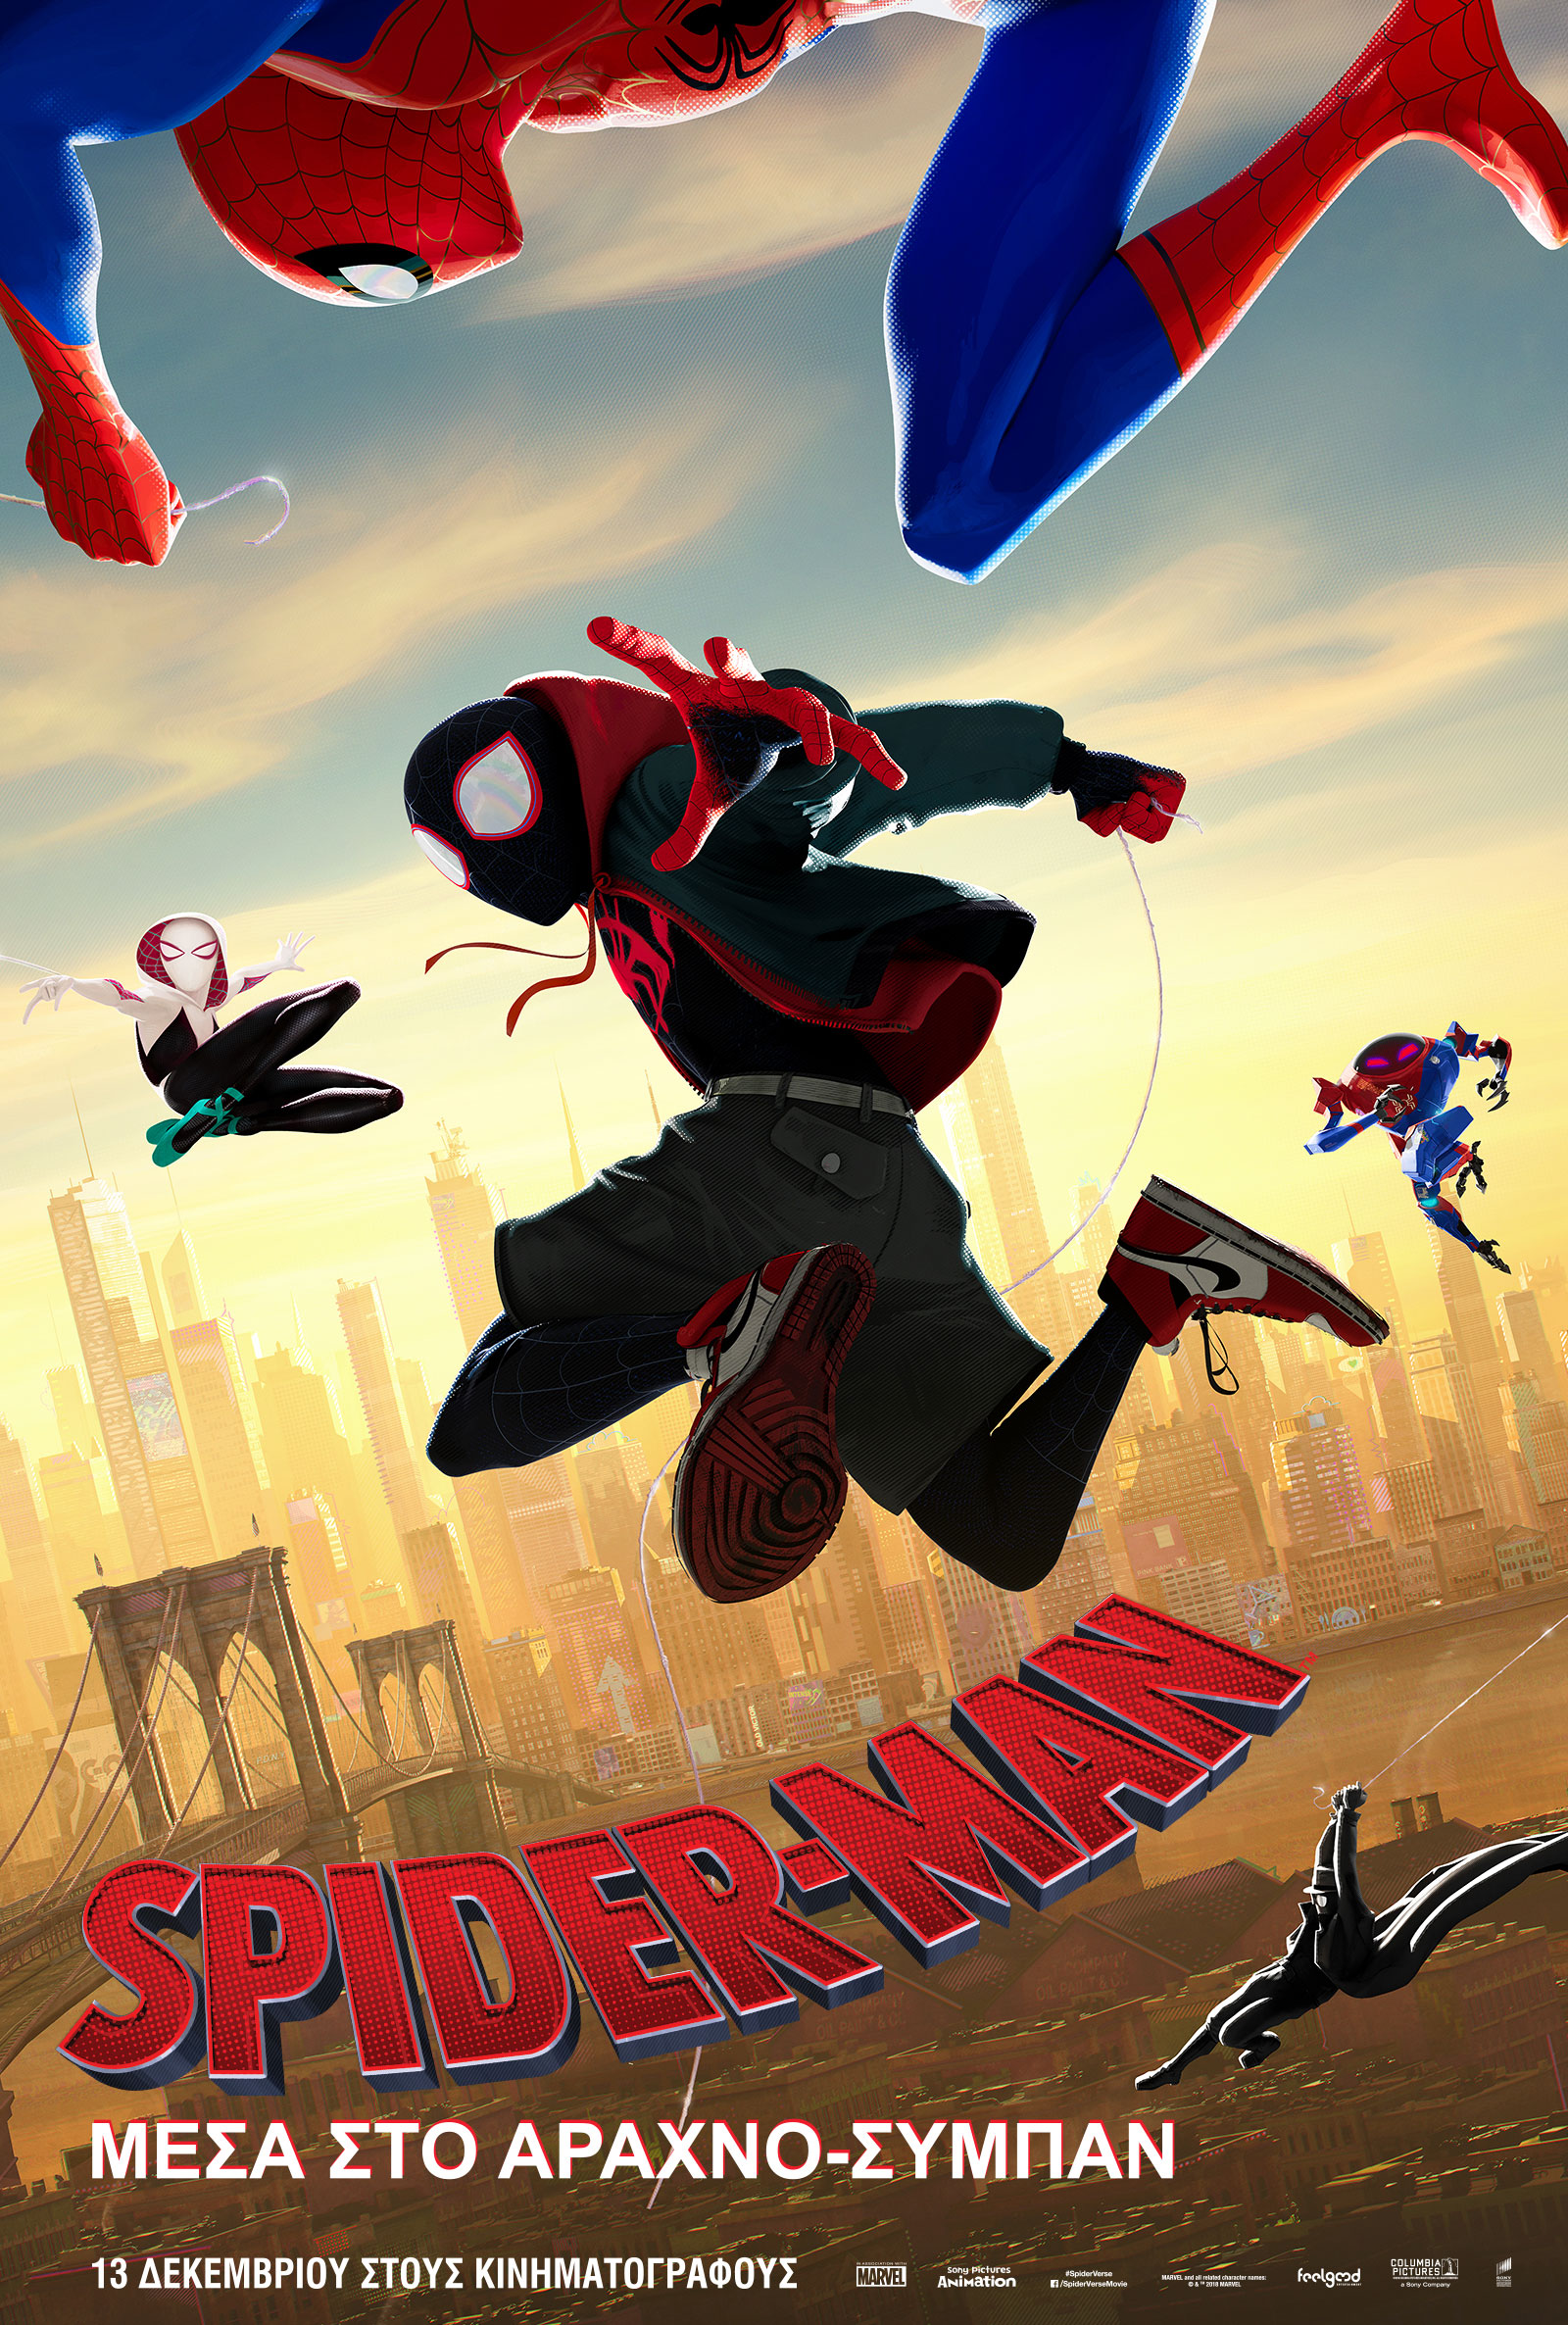 Into the Spider-verse (2)